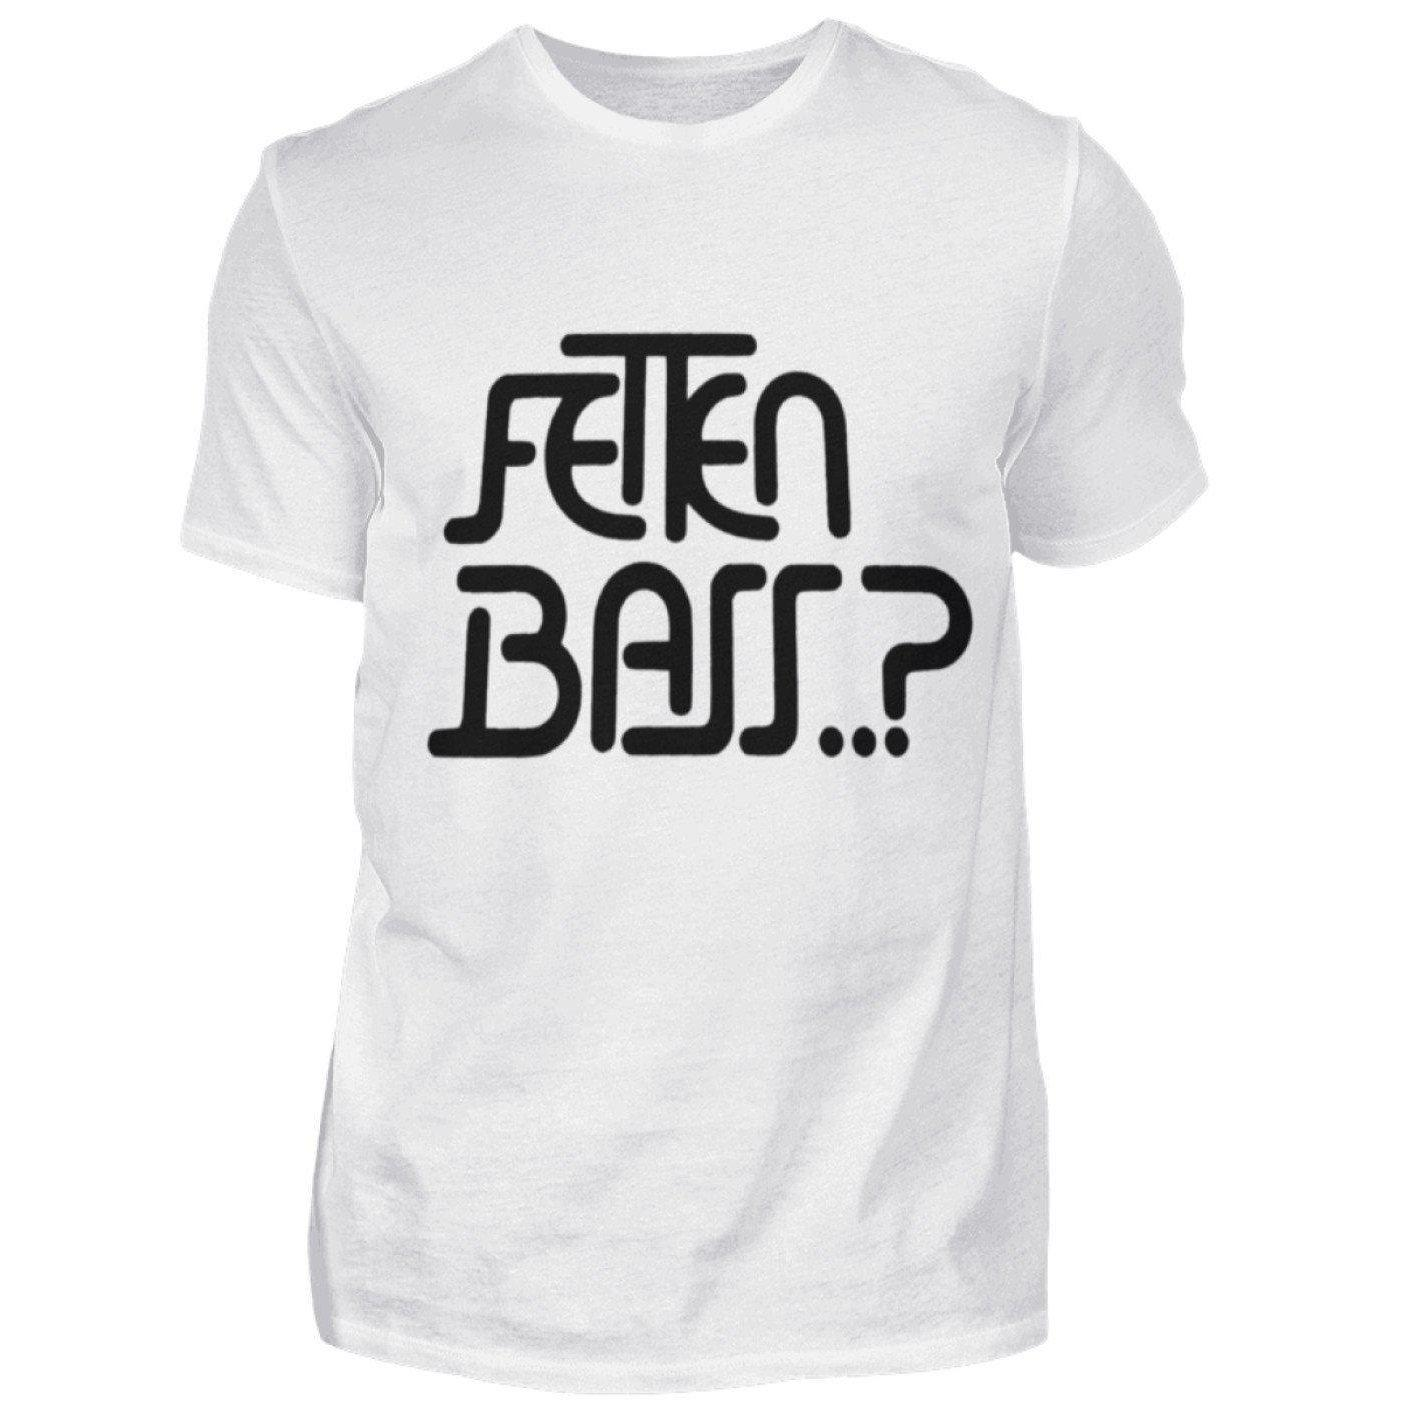 FETTEN BASS..? - Herren Shirt Herren Basic T-Shirt White / S - Rave On!® der Club & Techno Szene Shop für Coole Junge Mode Streetwear Style & Fashion Outfits + Sexy Festival 420 Stuff